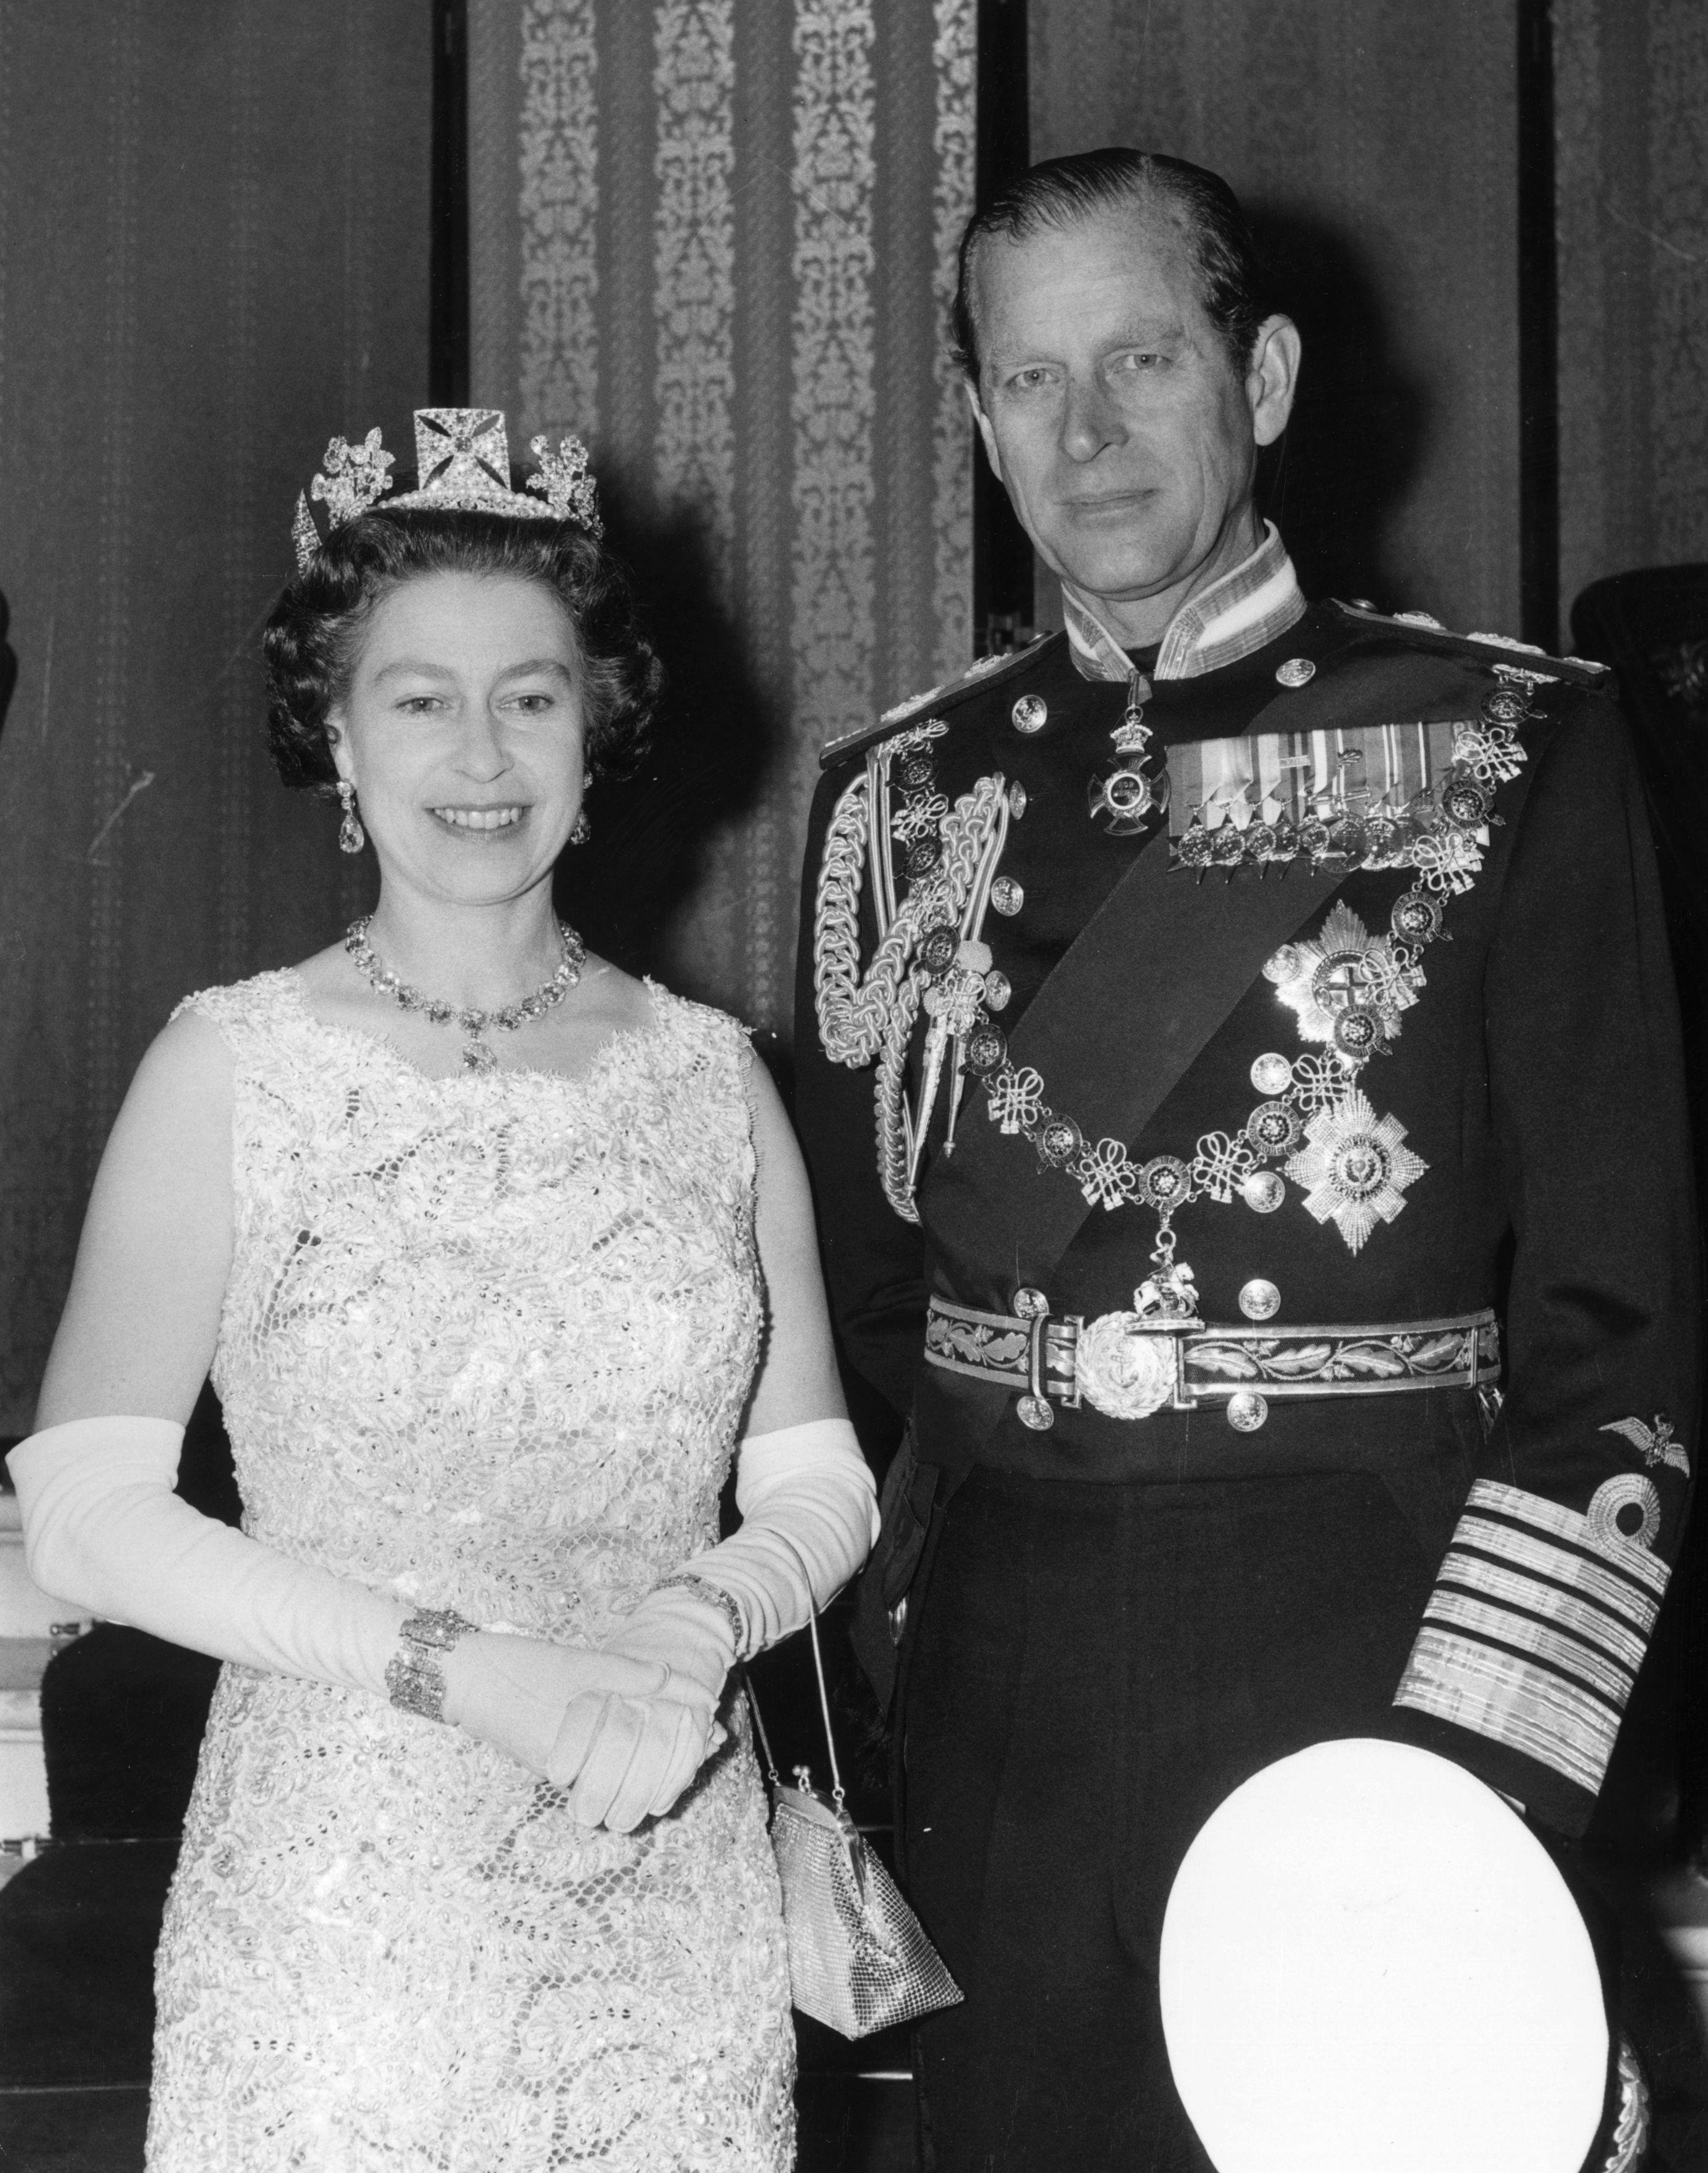 Queen Elizabeth II and Prince Philip, Duke of Edinburgh, during celebrations for their Silver Wedding anniversary   Photo: Getty Images